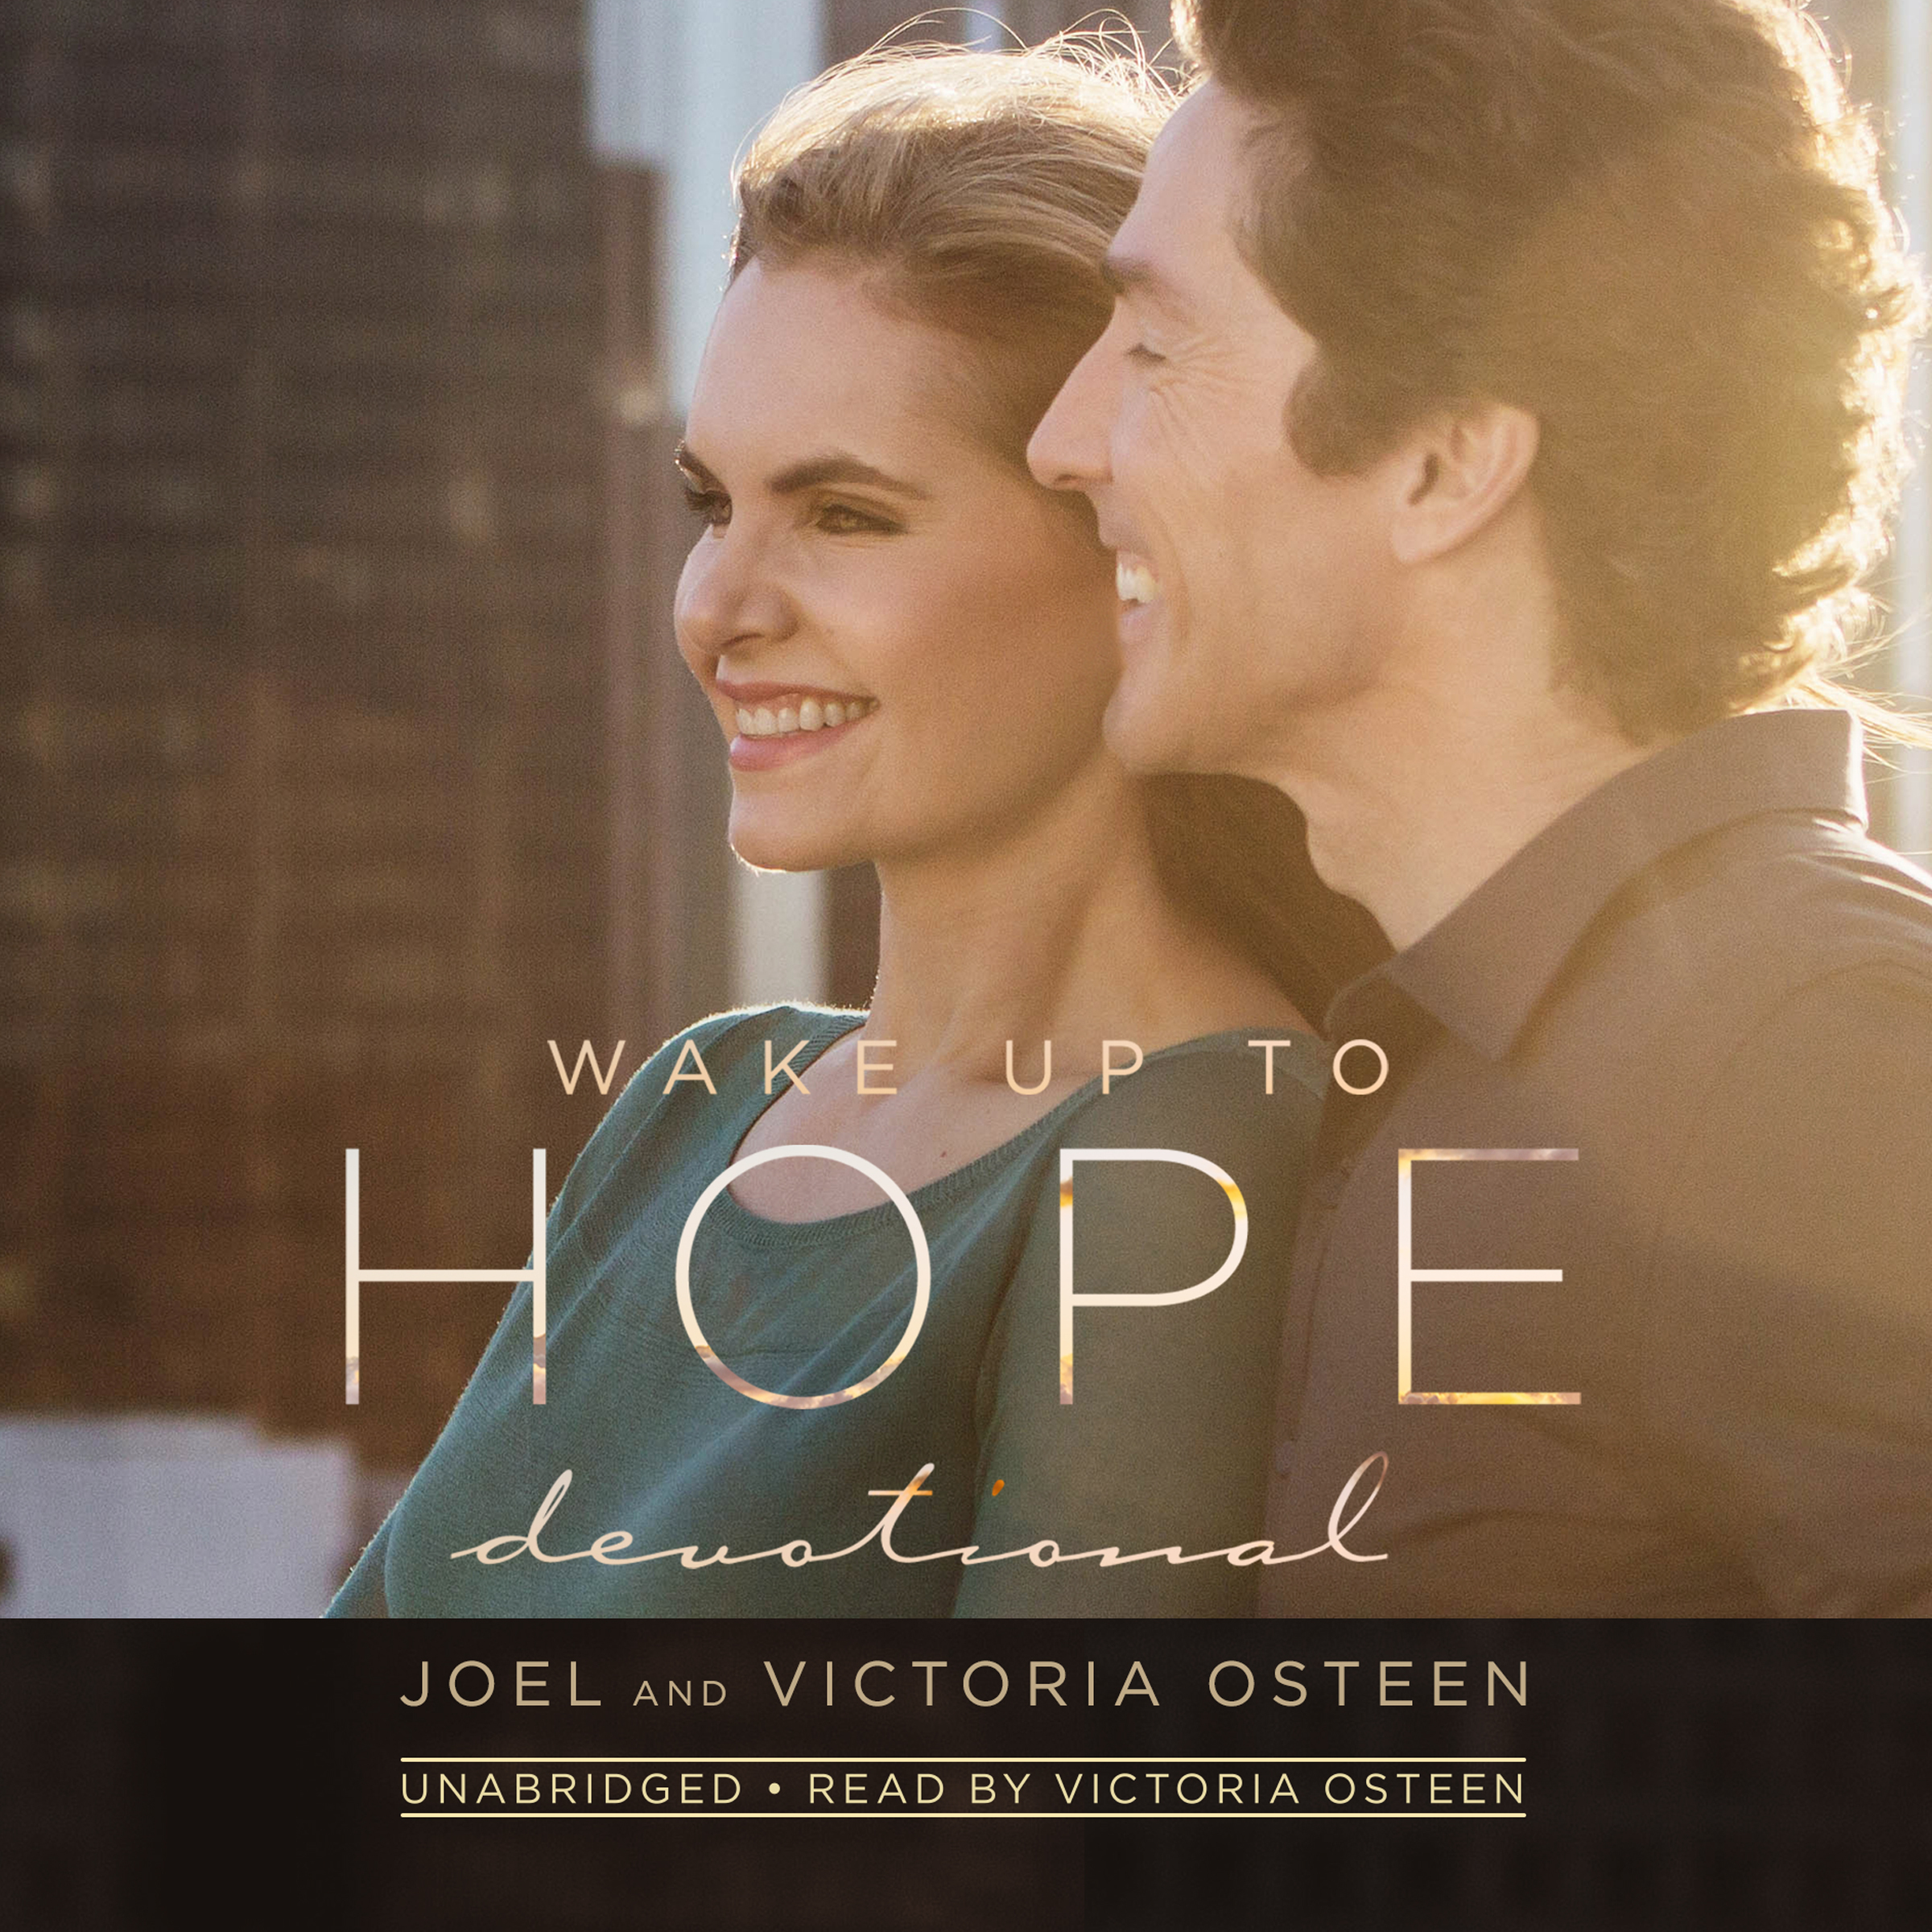 Printable Wake Up to Hope: Devotional Audiobook Cover Art